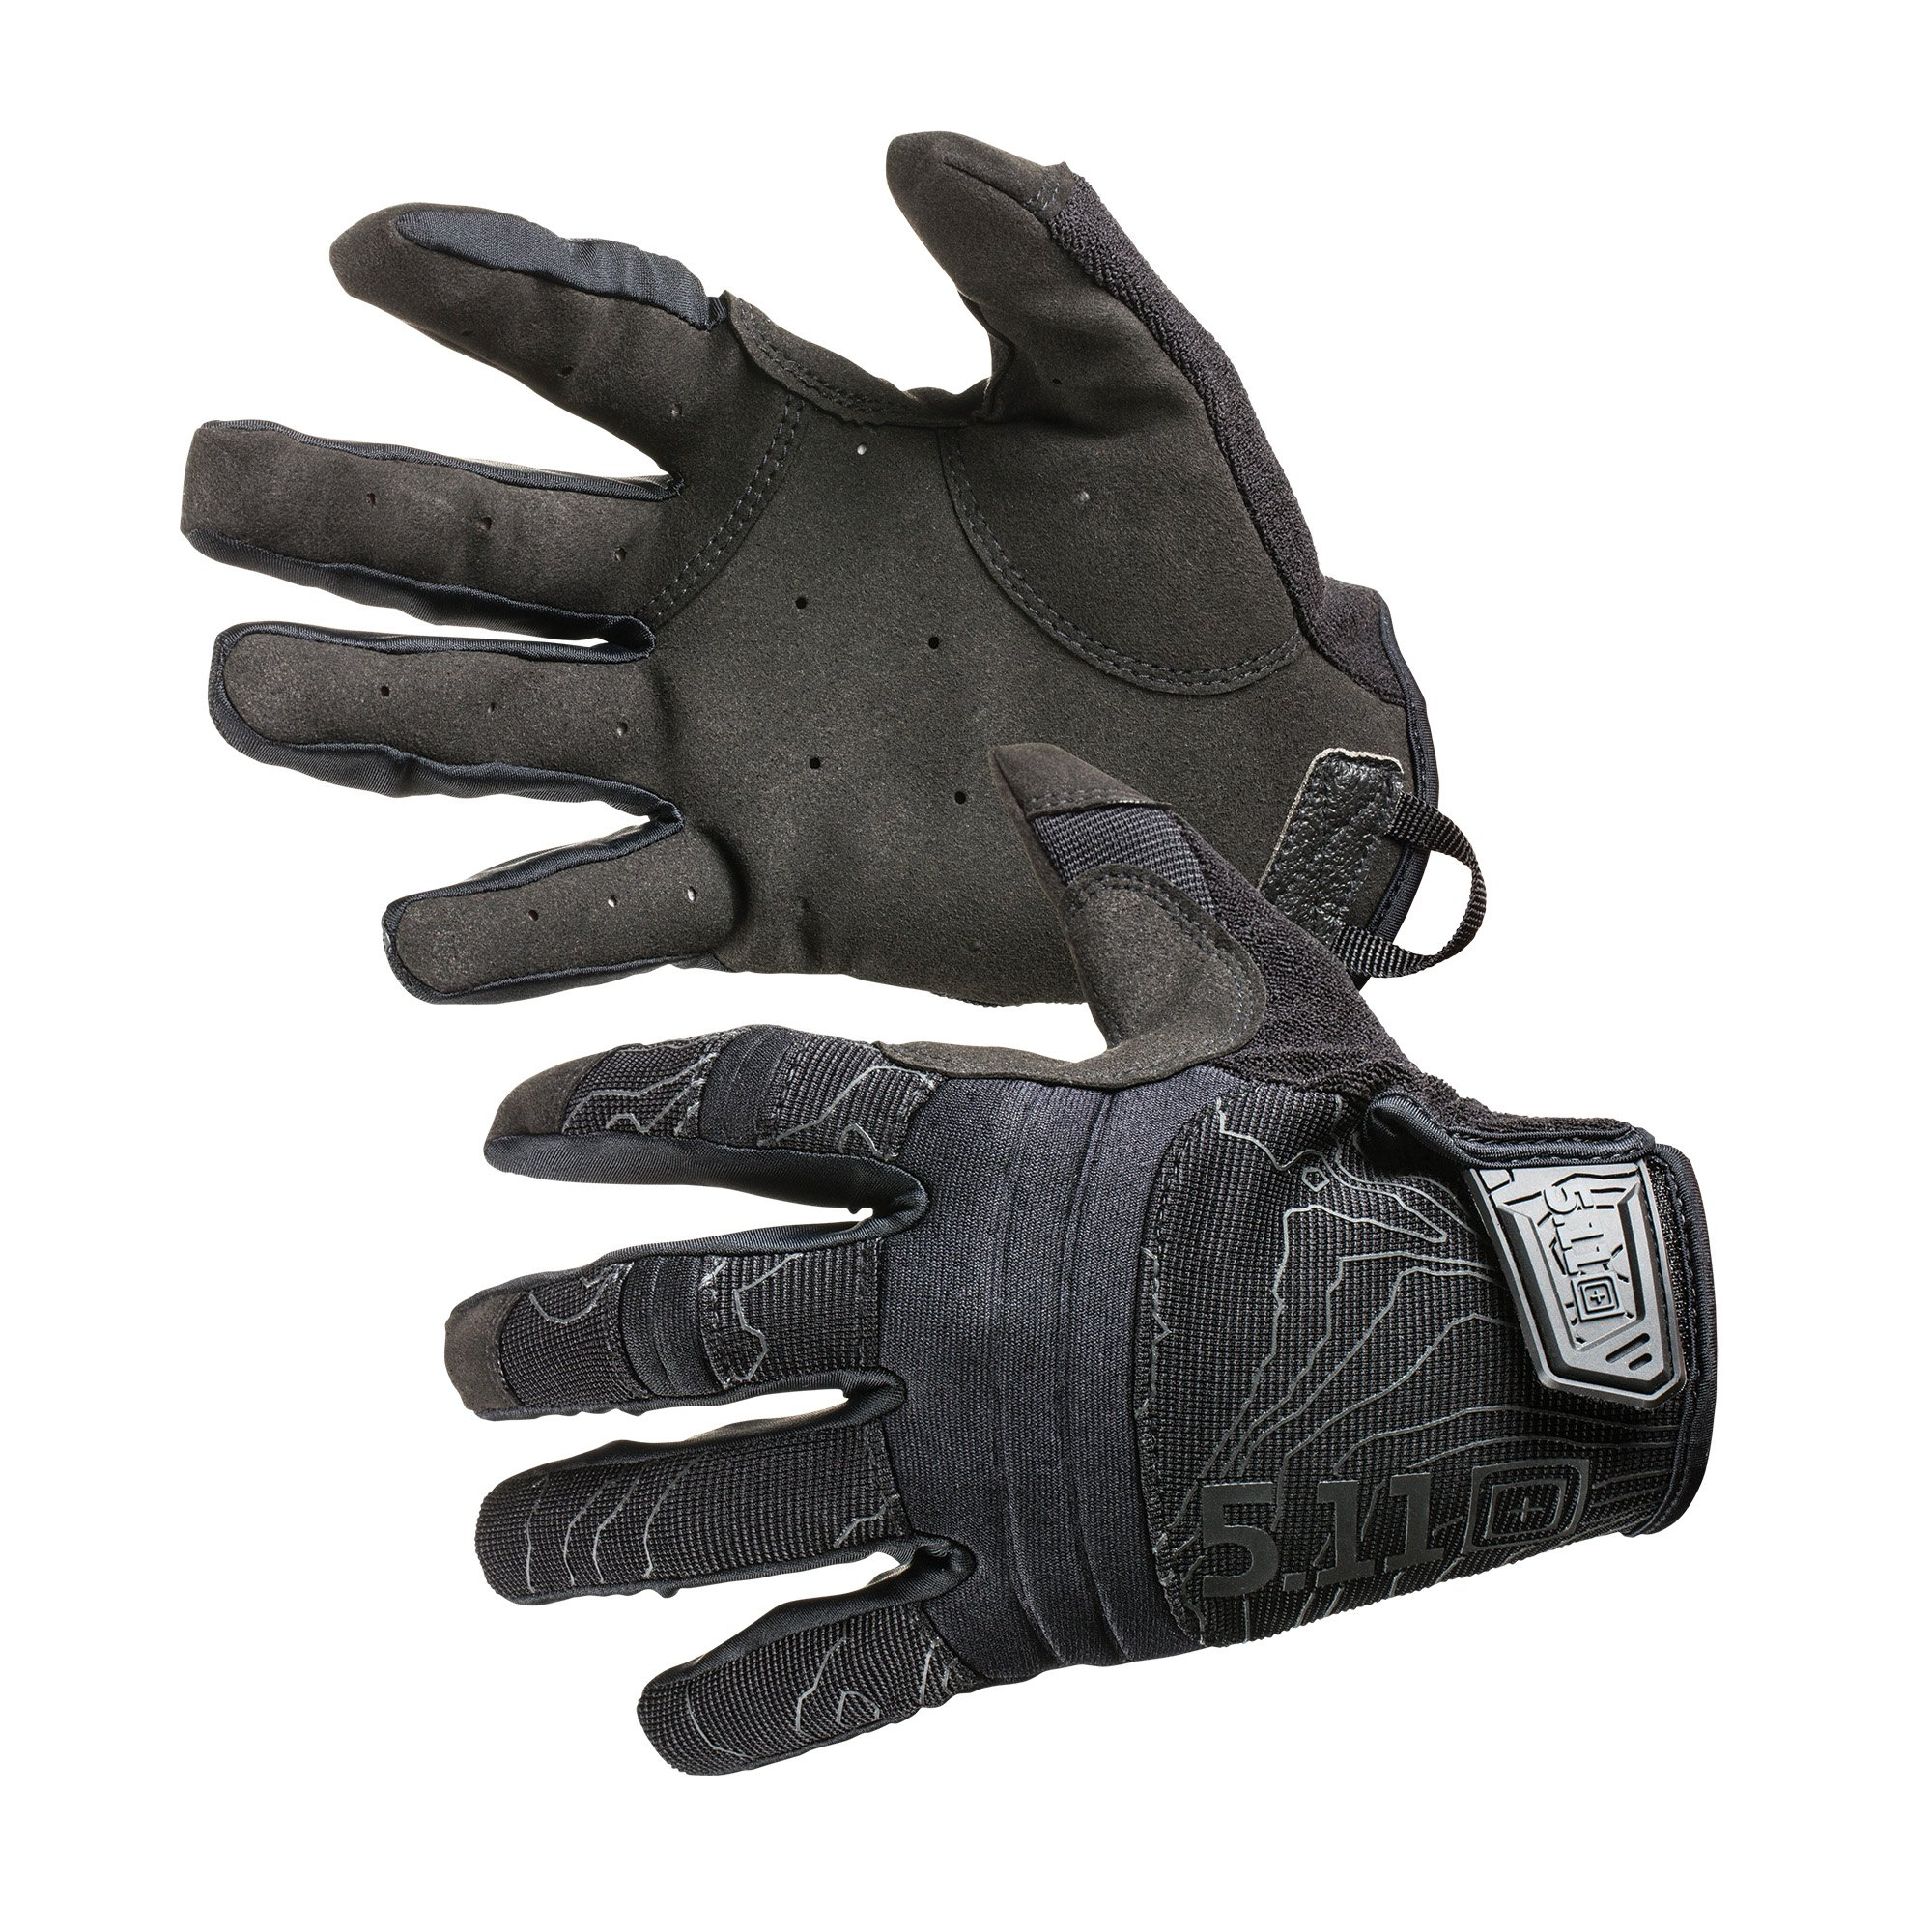 COMPETITION SHOOTING GLOVE – Black